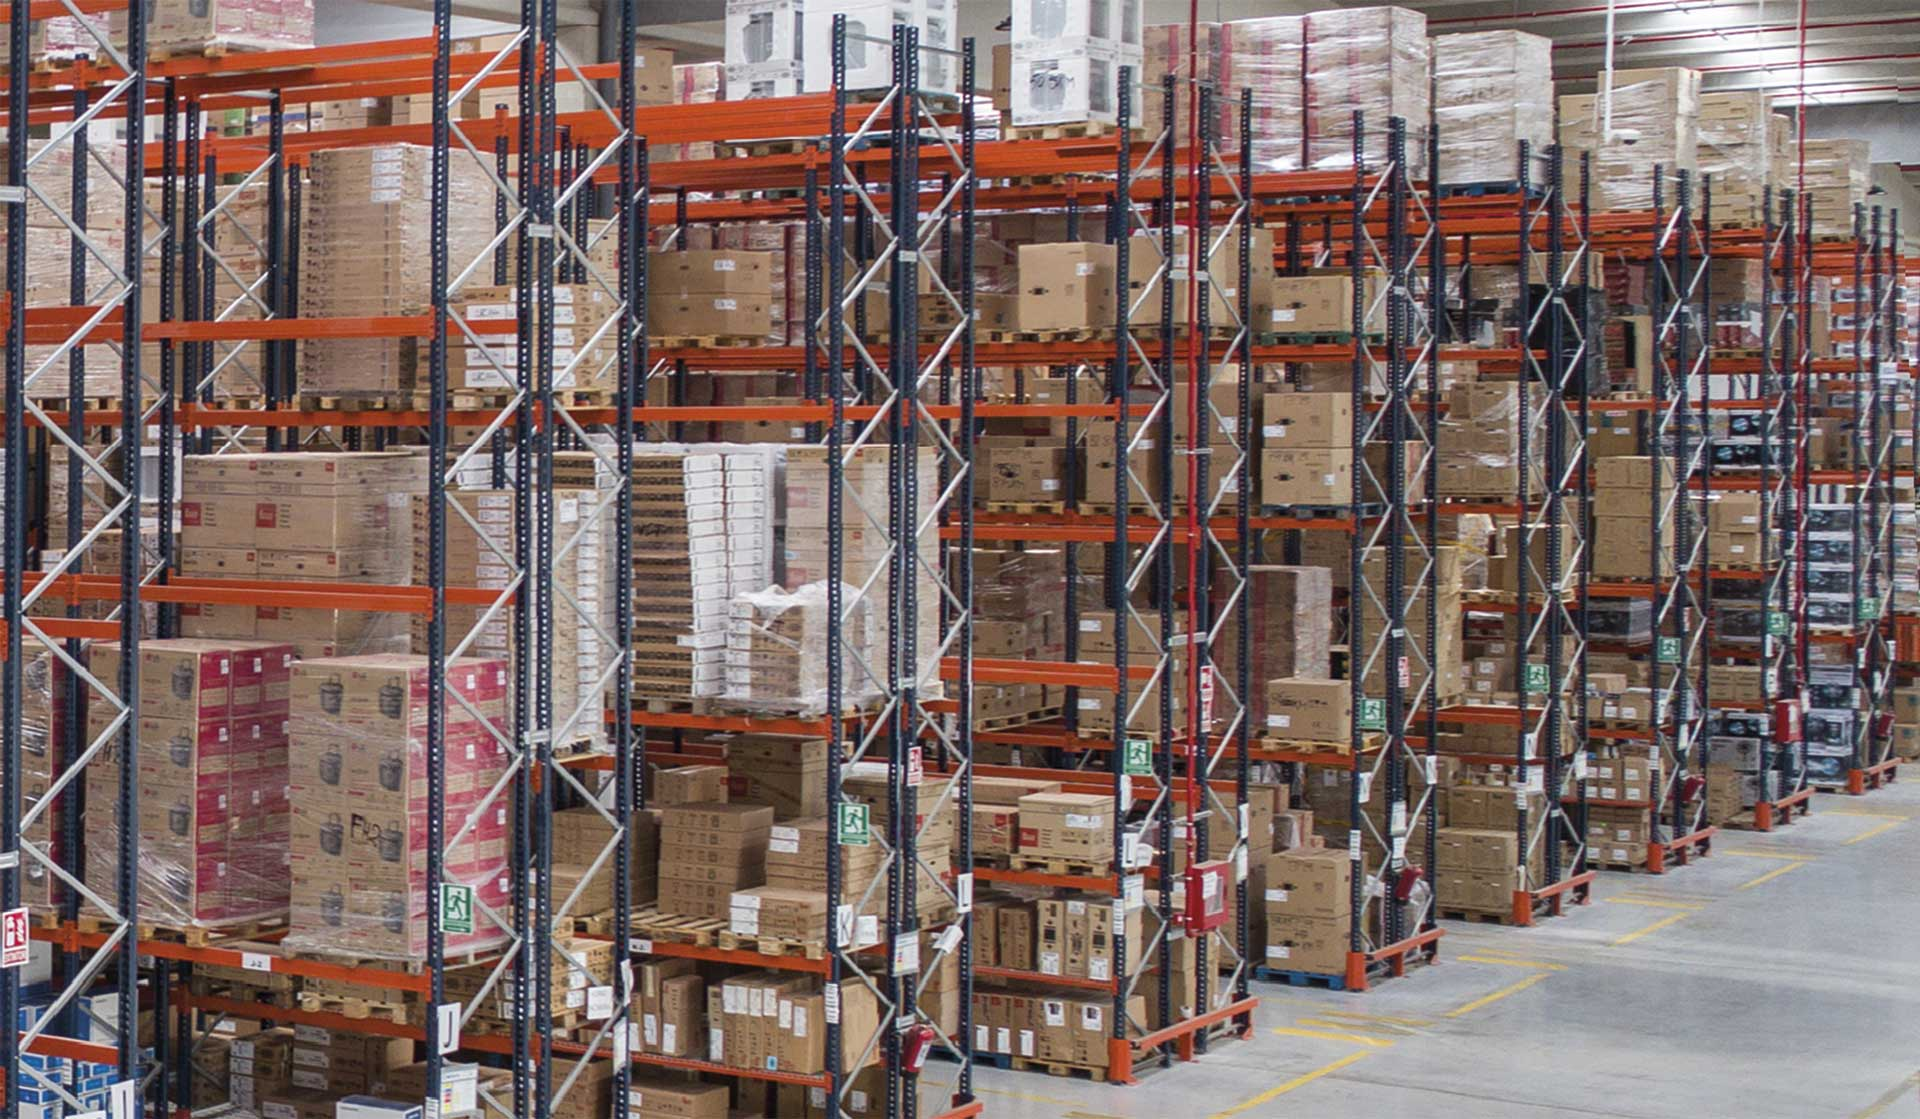 Knowing the most common logistics issues occurring in warehouses is crucial for having an efficient supply chain